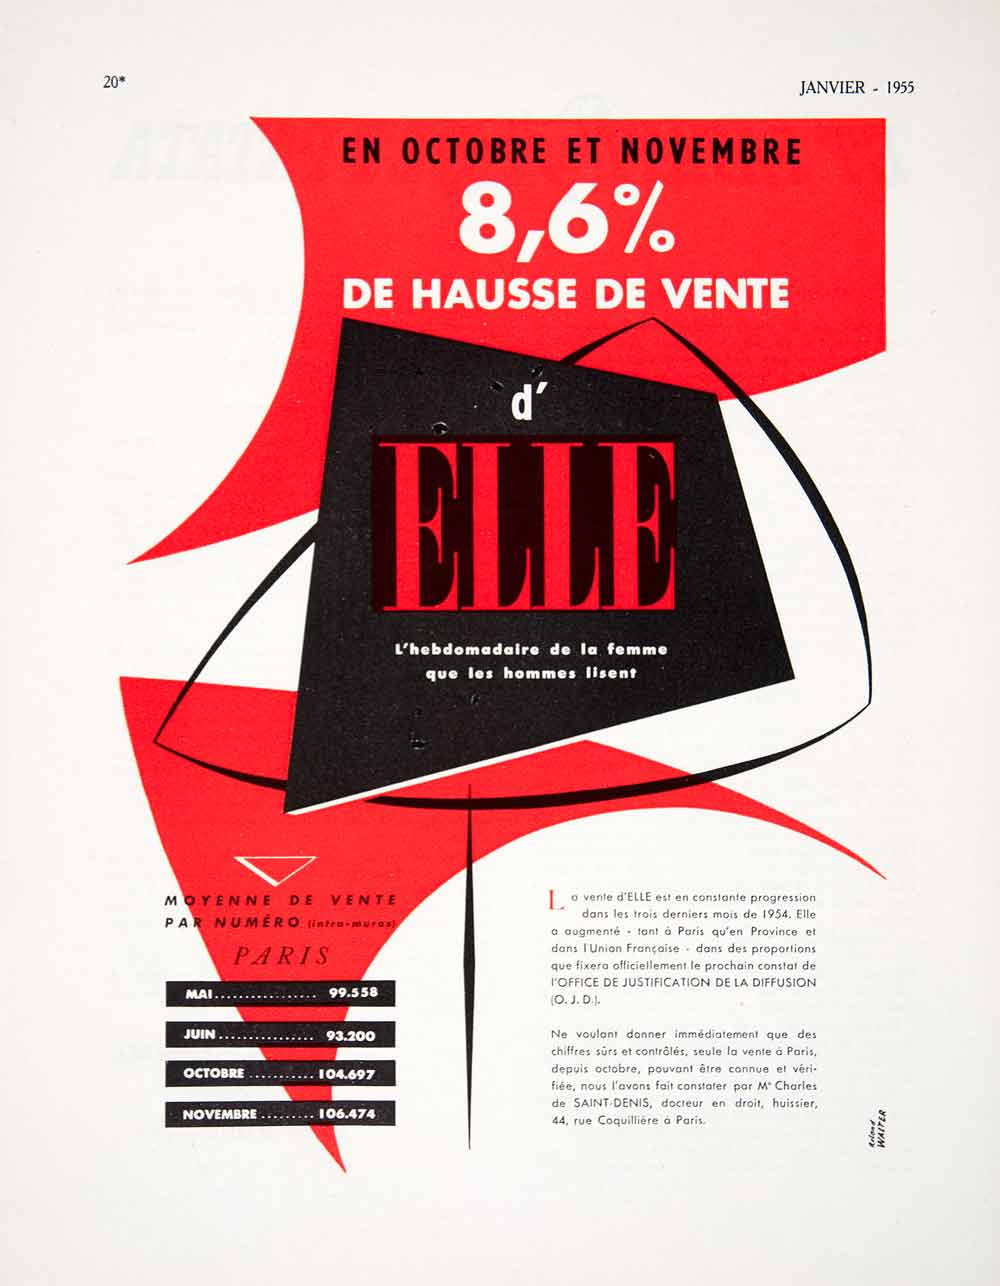 1955 Ad Paris France Saint-Denis French Advertisement d'Elle Roland Walter VEN2